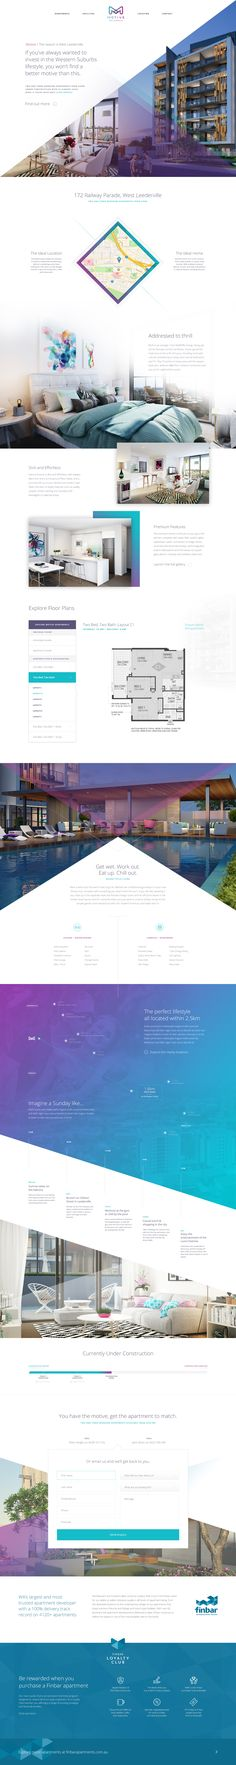 Motive Apartments – Ui design concept and visual treatments by Kylie Timpani @Human.